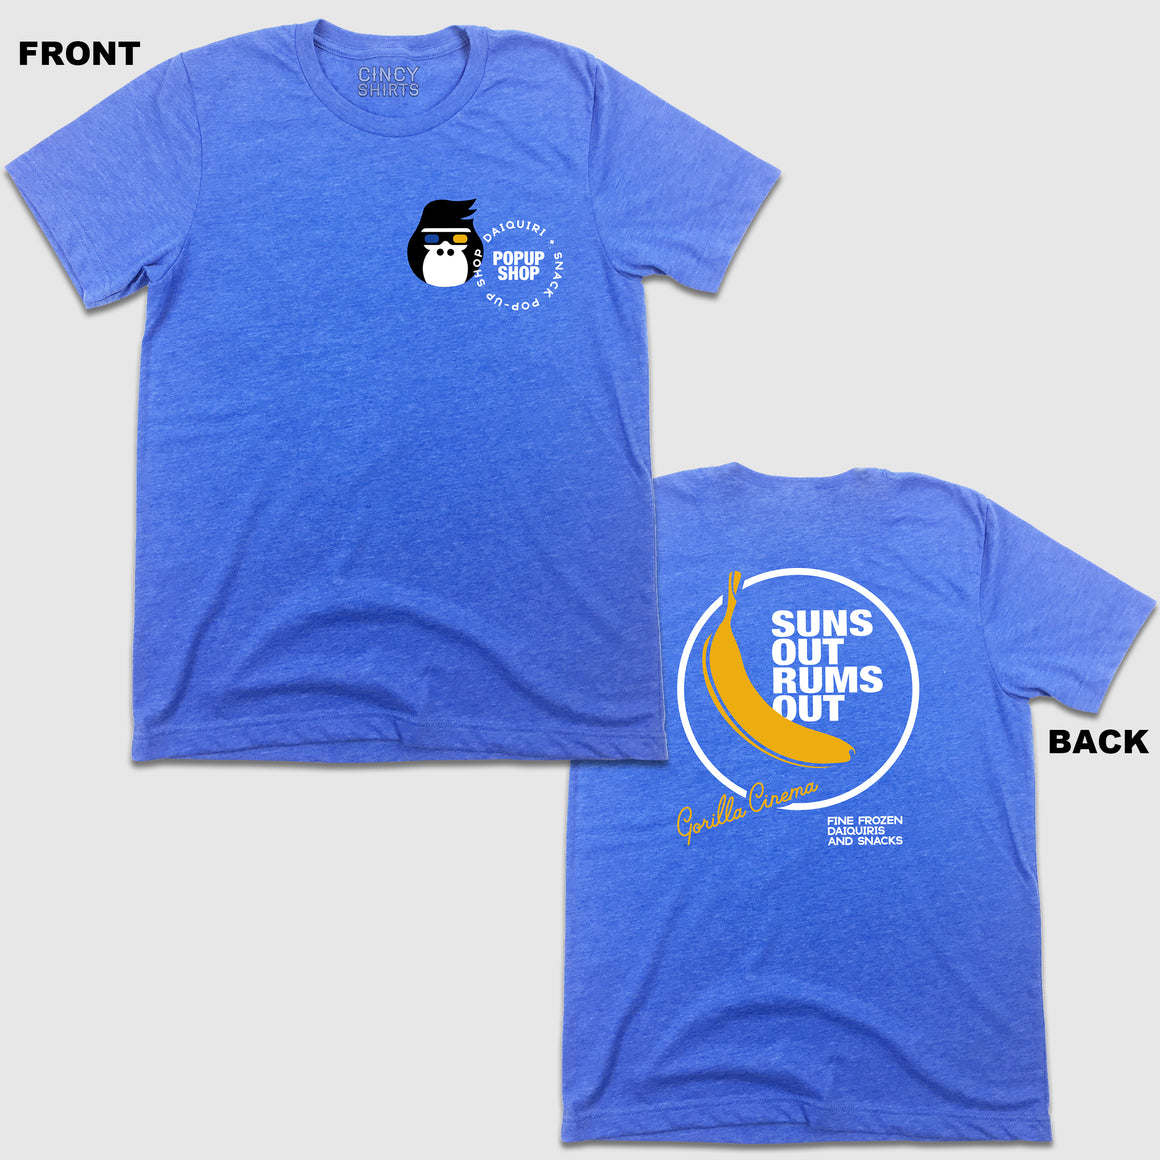 "Gorilla Cinema Presents ""Suns Out Rums Out"" - Royal Blue Tee - Cincy Shirts"